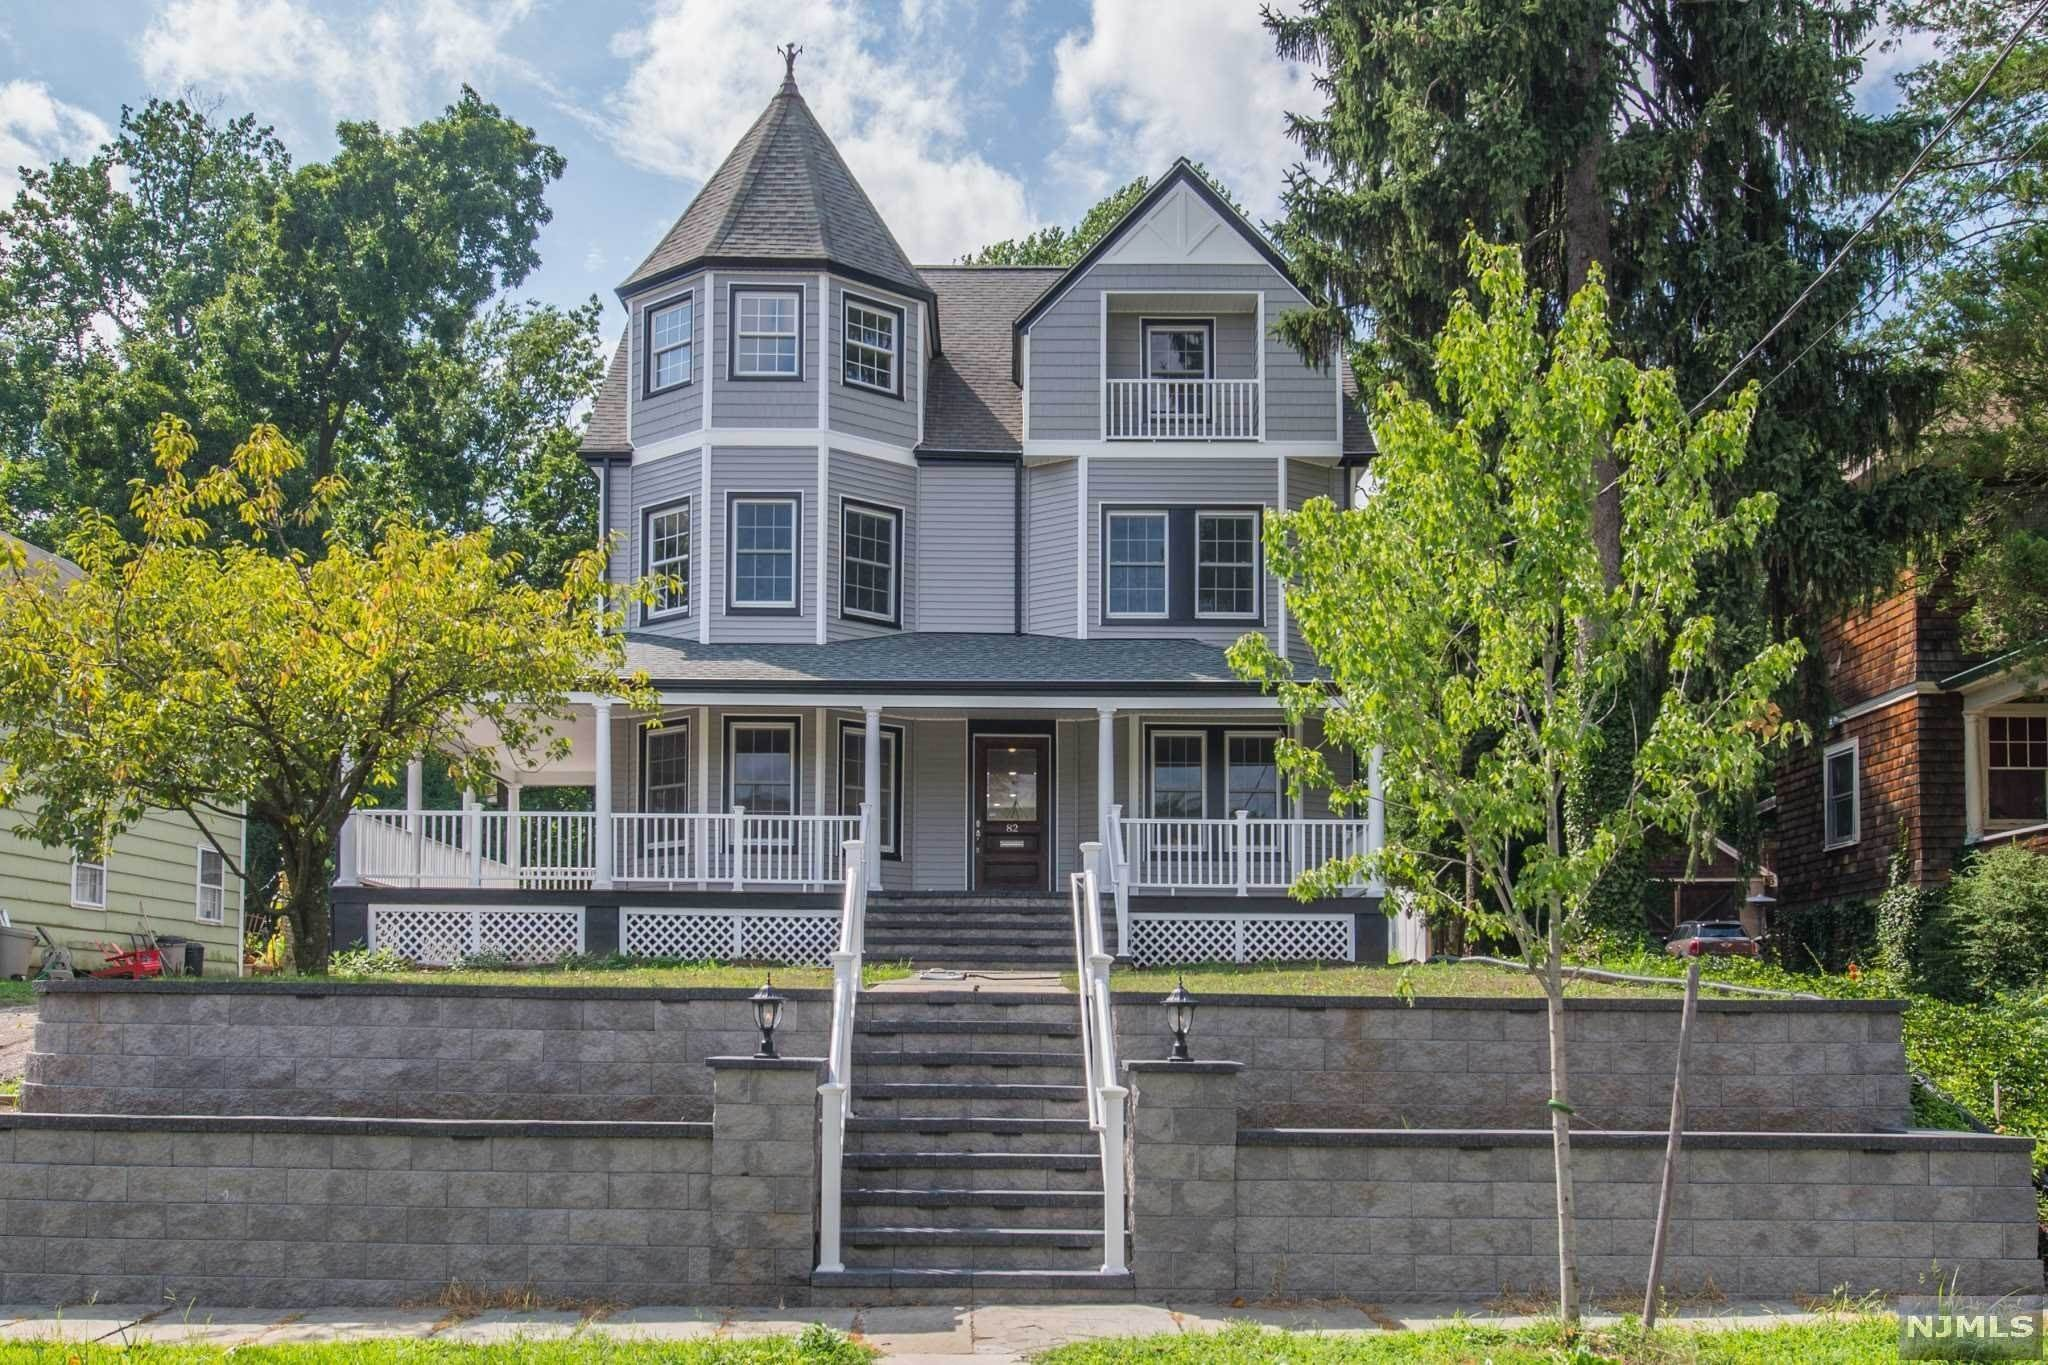 Single Family Home for Sale at 82 Christopher Street Montclair, New Jersey, 07042 United States